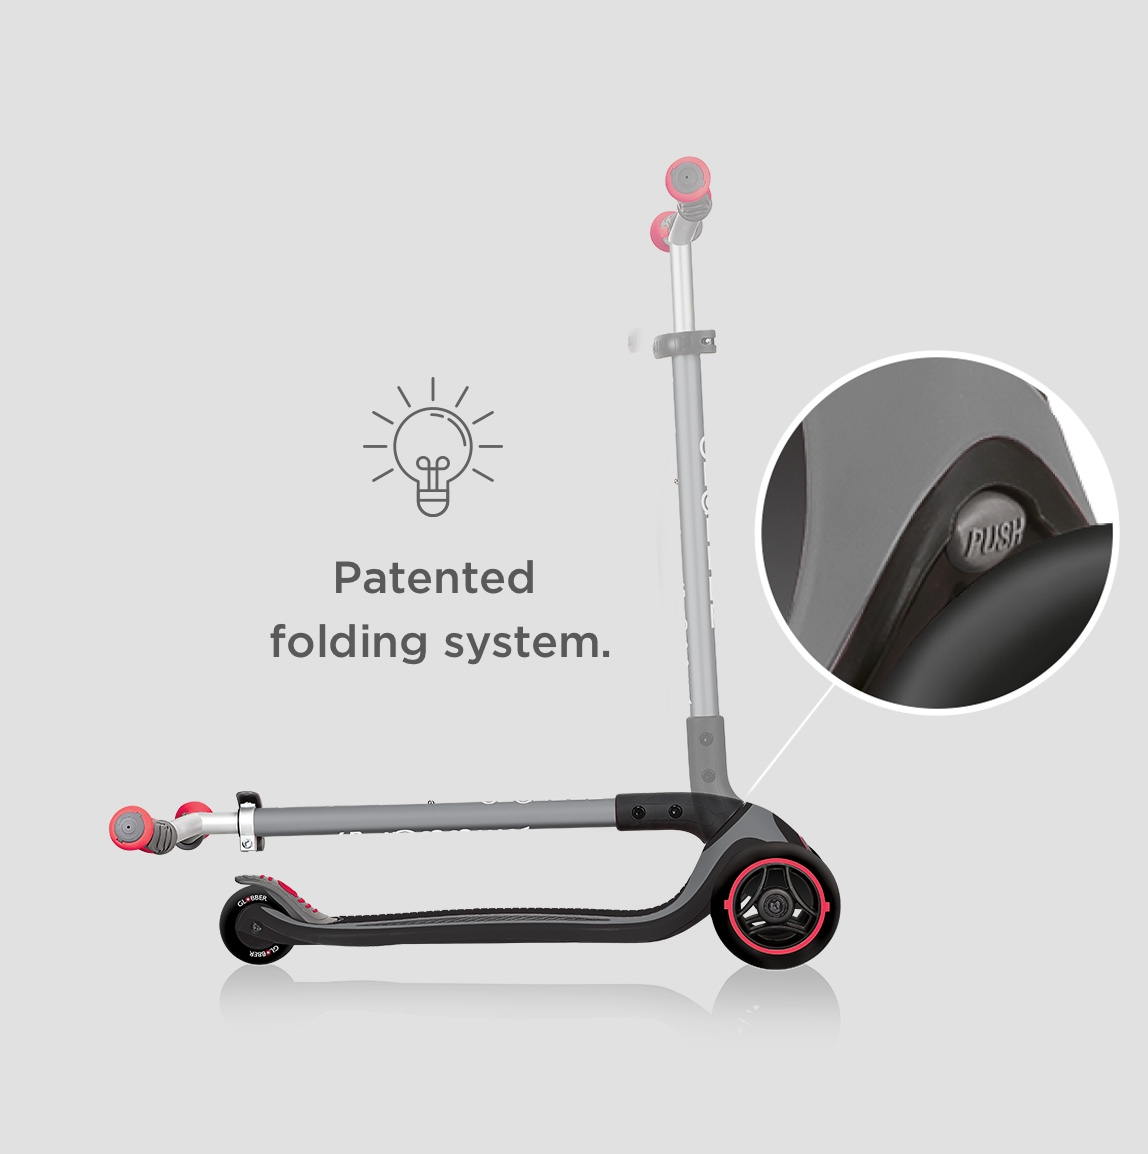 Globber-MASTER-3-wheel-foldable-scooters-with-patented-folding-system-and-push-button-mechanism